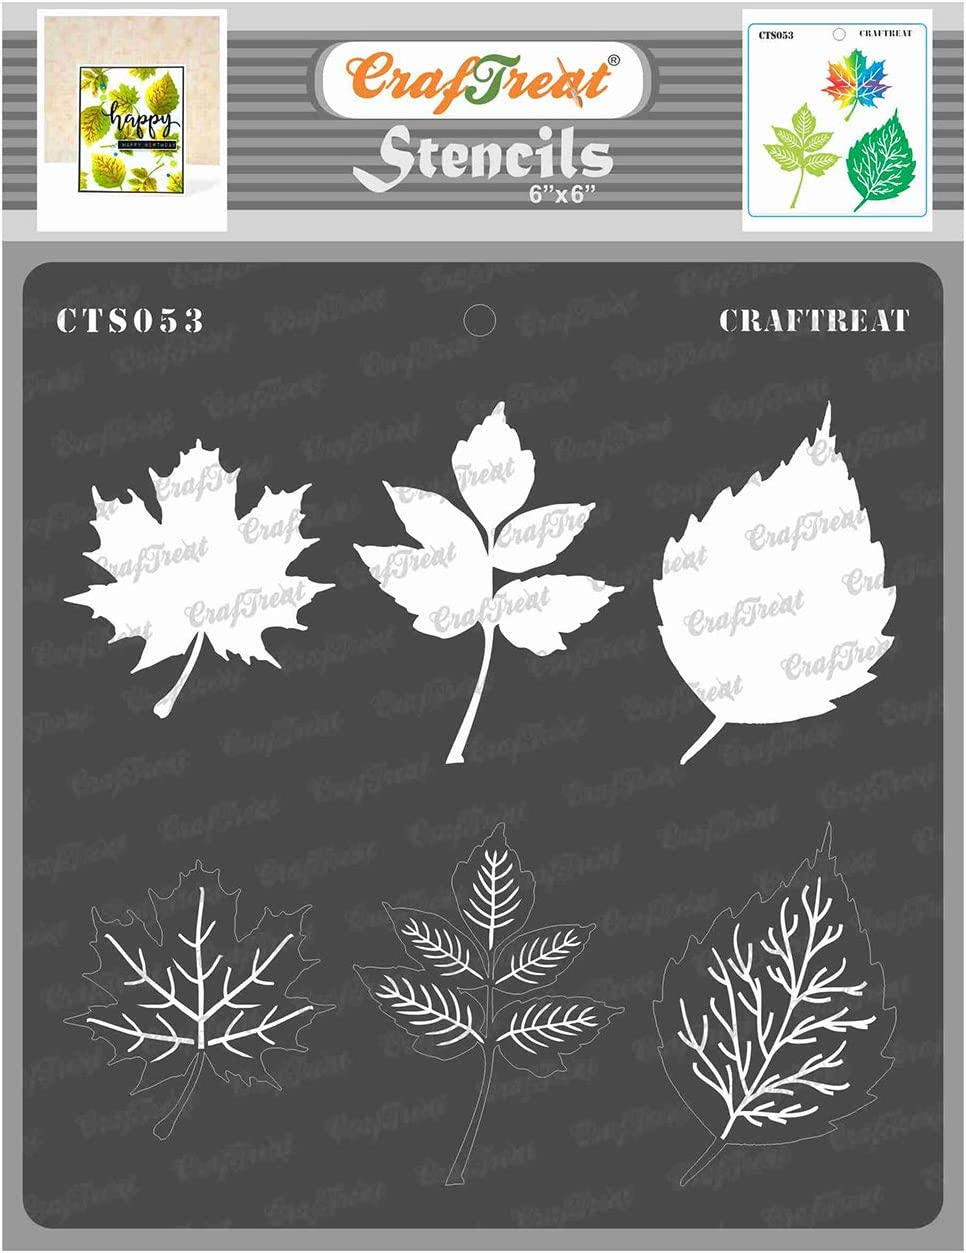 CrafTreat Layered Stencils for Painting on Wood, Canvas, Paper, Fabric, Floor, Wall and Tile - Leaves - 6x6 Inches - Reusable DIY Art and Craft Stencils for Painting Leaves - Stencil for Leaves